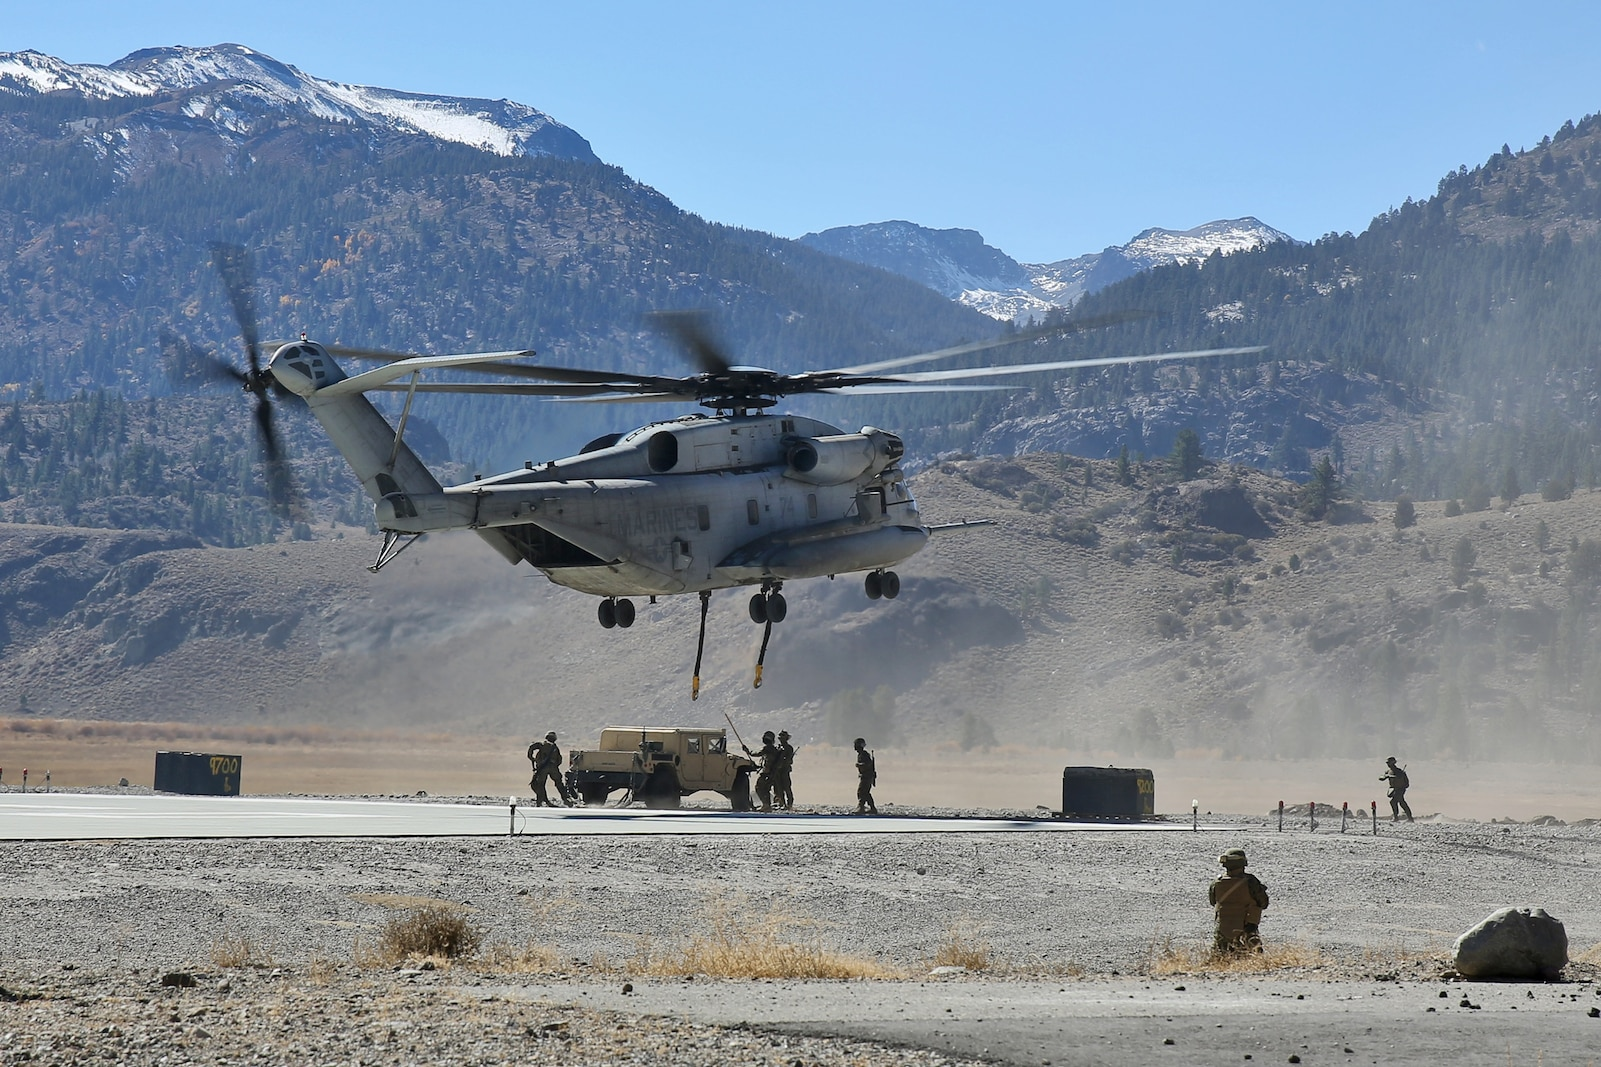 Marines with Landing Support Company, Combat Logistics Regiment 17, 1st Marine Logistics Group, conduct a helicopter support team training operation during Mountain Exercise 6-13, aboard Marine Corps Mountain Warfare Training Center in Bridgeport, Calif., Oct. 18, 2013. During the exercise, a small detachment of Marines from 1st MLG provided logistical support to 1st Battalion, 5th Marine Regiment, 1st Marine Division.